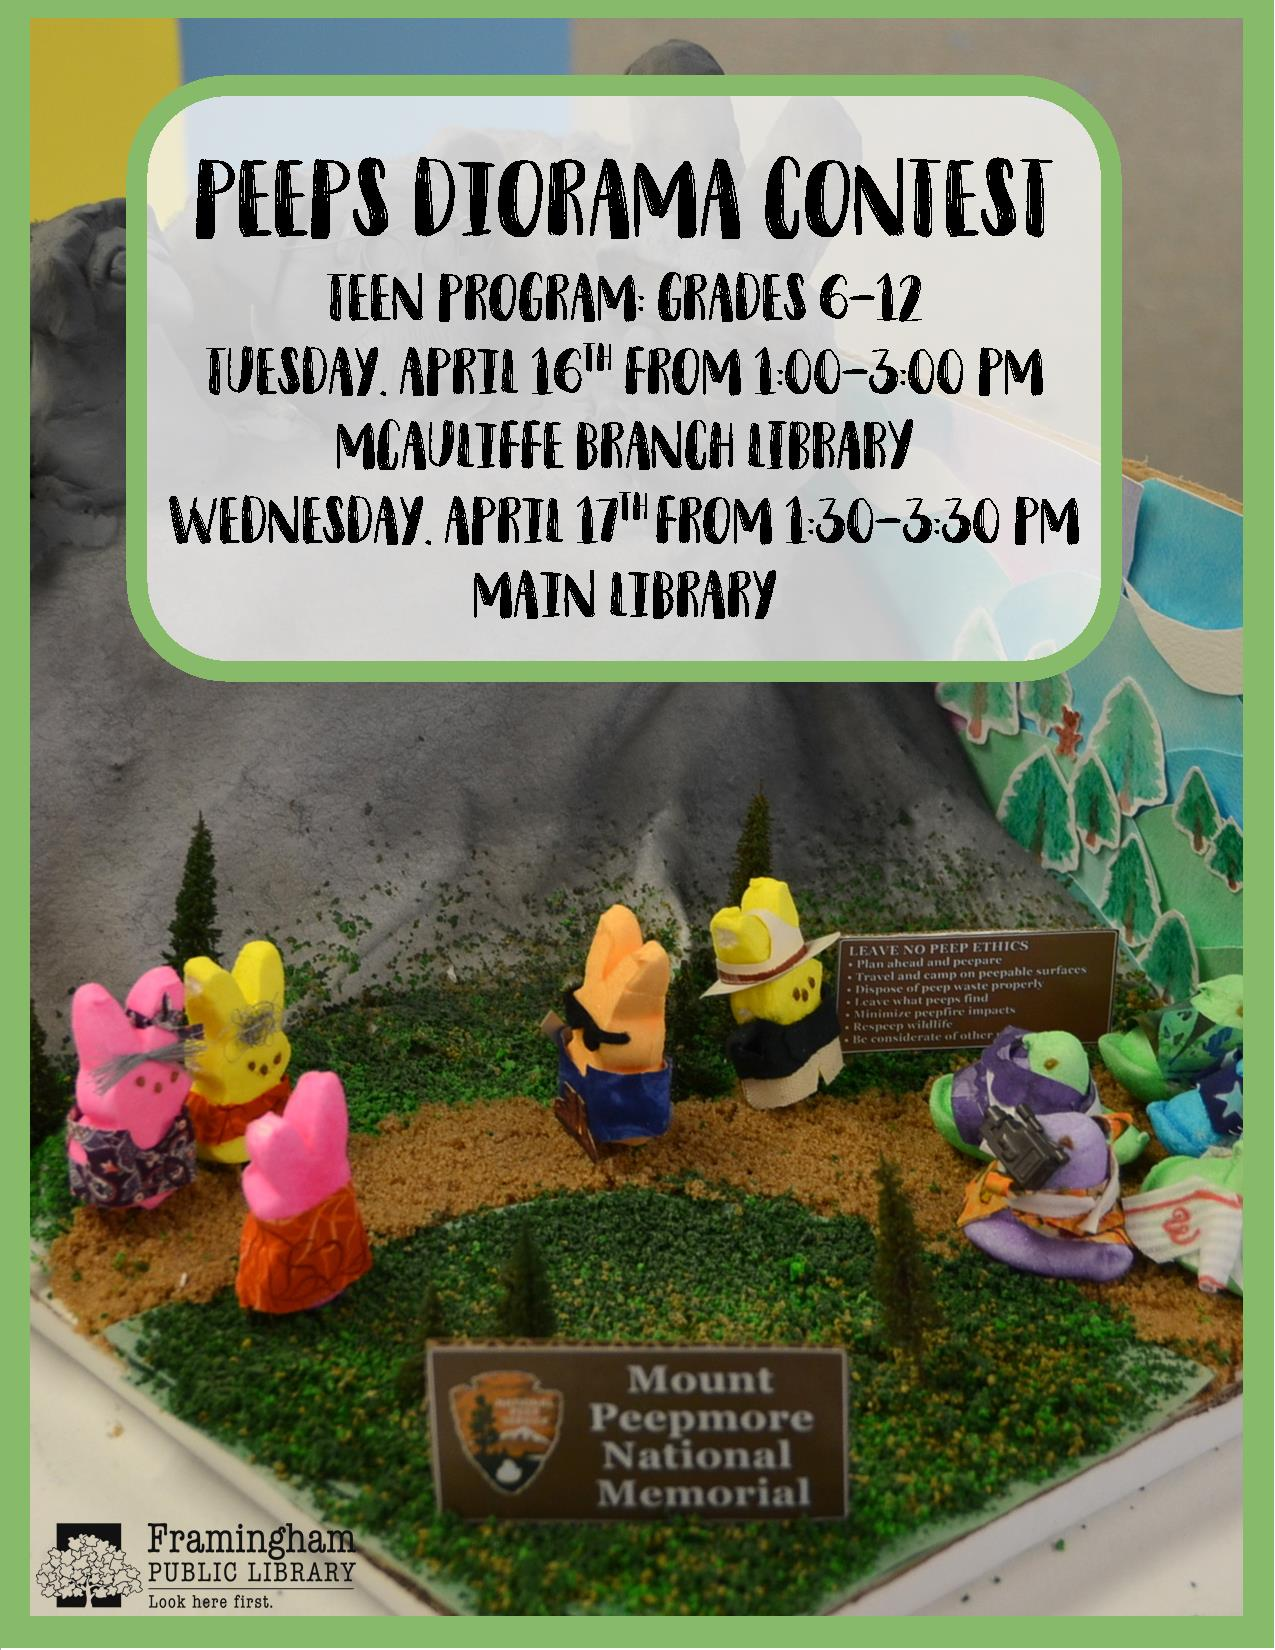 Vacation Week Craft: Peeps Dioramas (McAuliffe Branch Library) thumbnail Photo